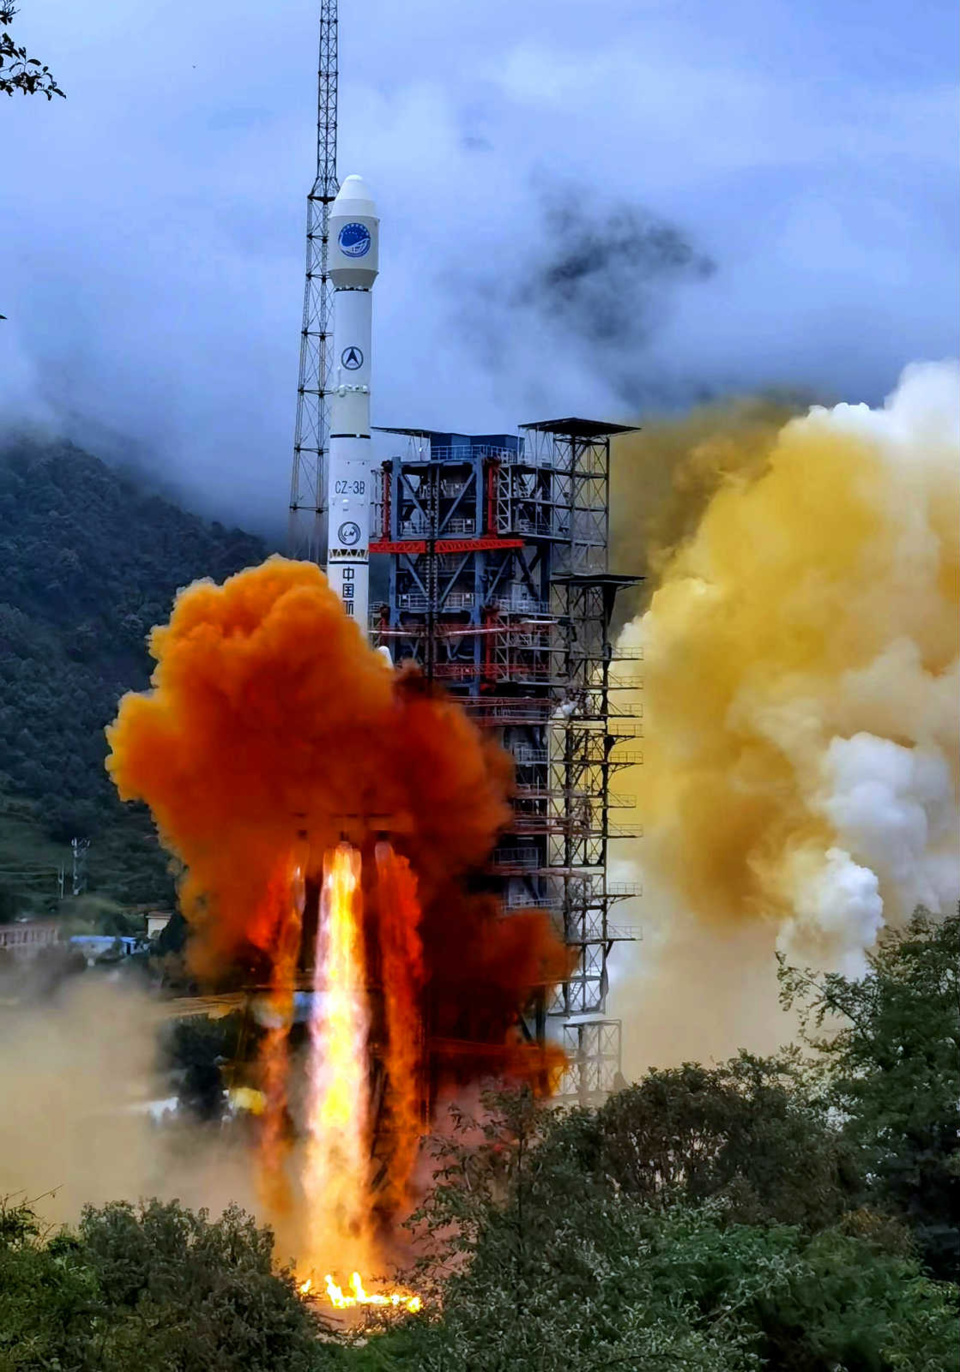 A carrier rocket carrying the last satellite of the BeiDou Navigation Satellite System blasts off from the Xichang Satellite Launch Center in Southwest China's Sichuan Province, June 23. (Photo by Li Jieyi/People's Daily Online)